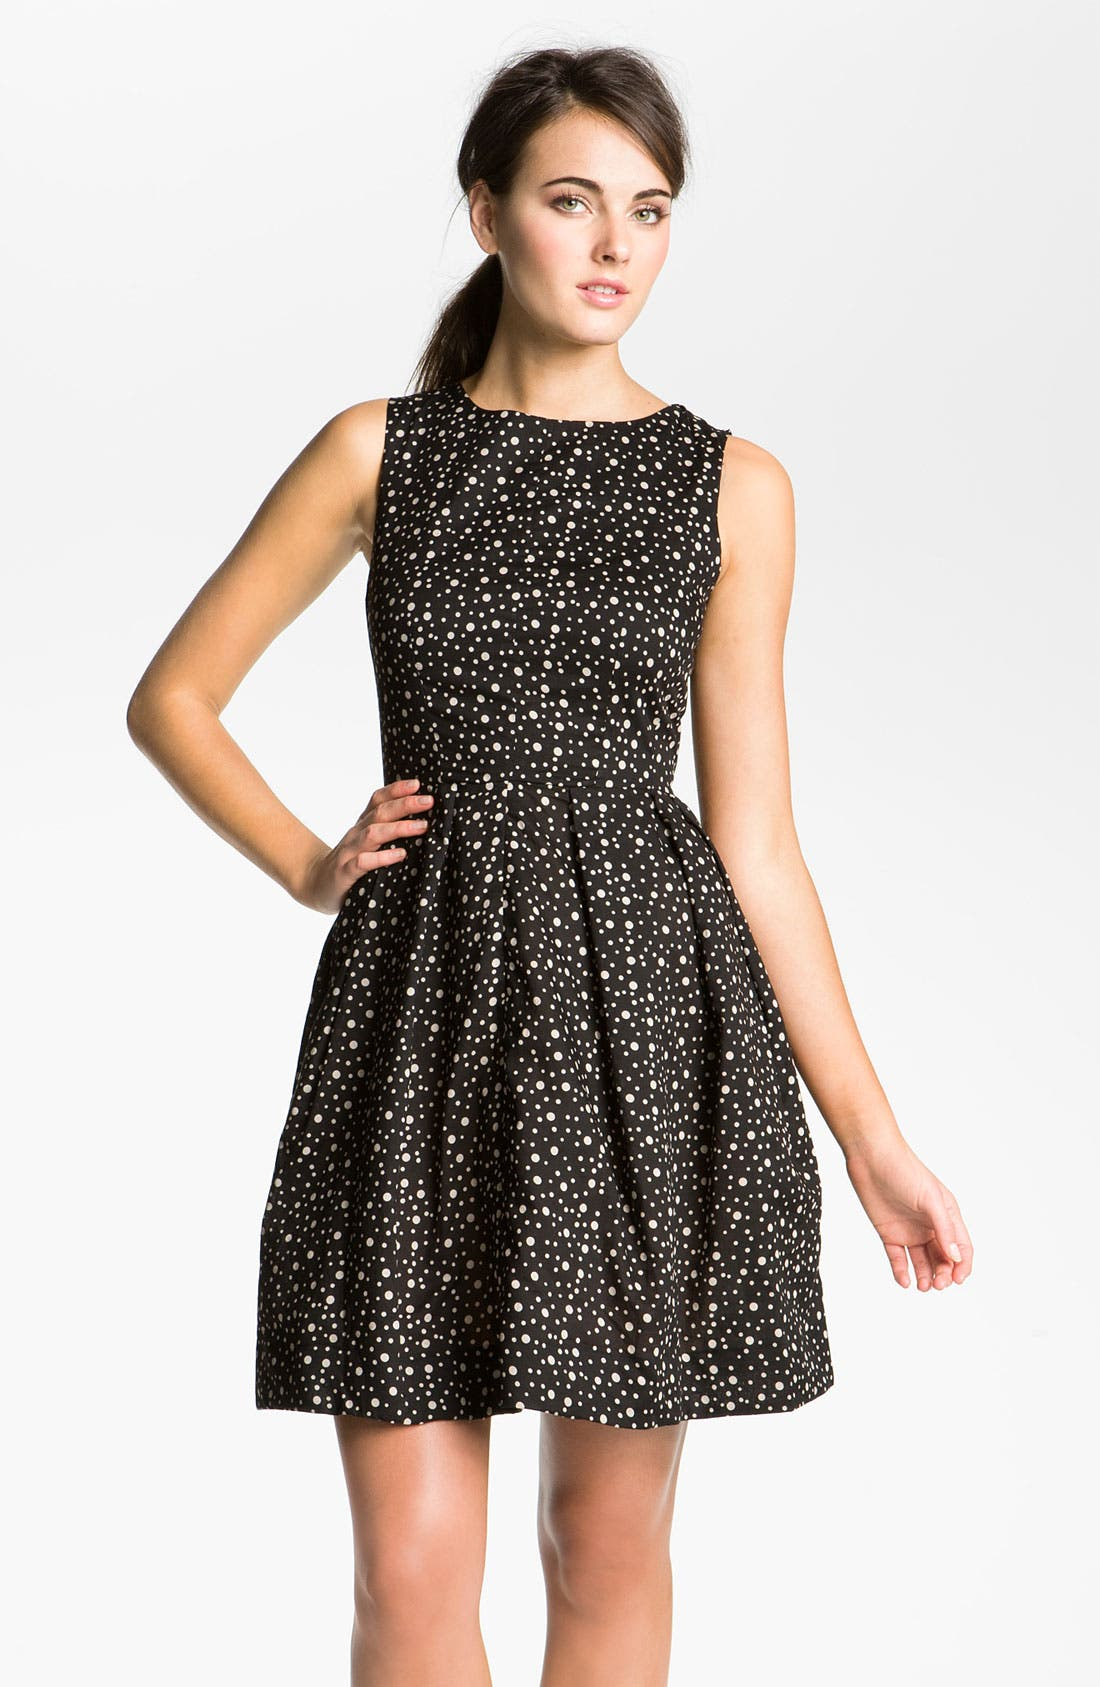 Alternate Image 1 Selected - Taylor Dresses Polka Dot Cotton Fit & Flare Dress